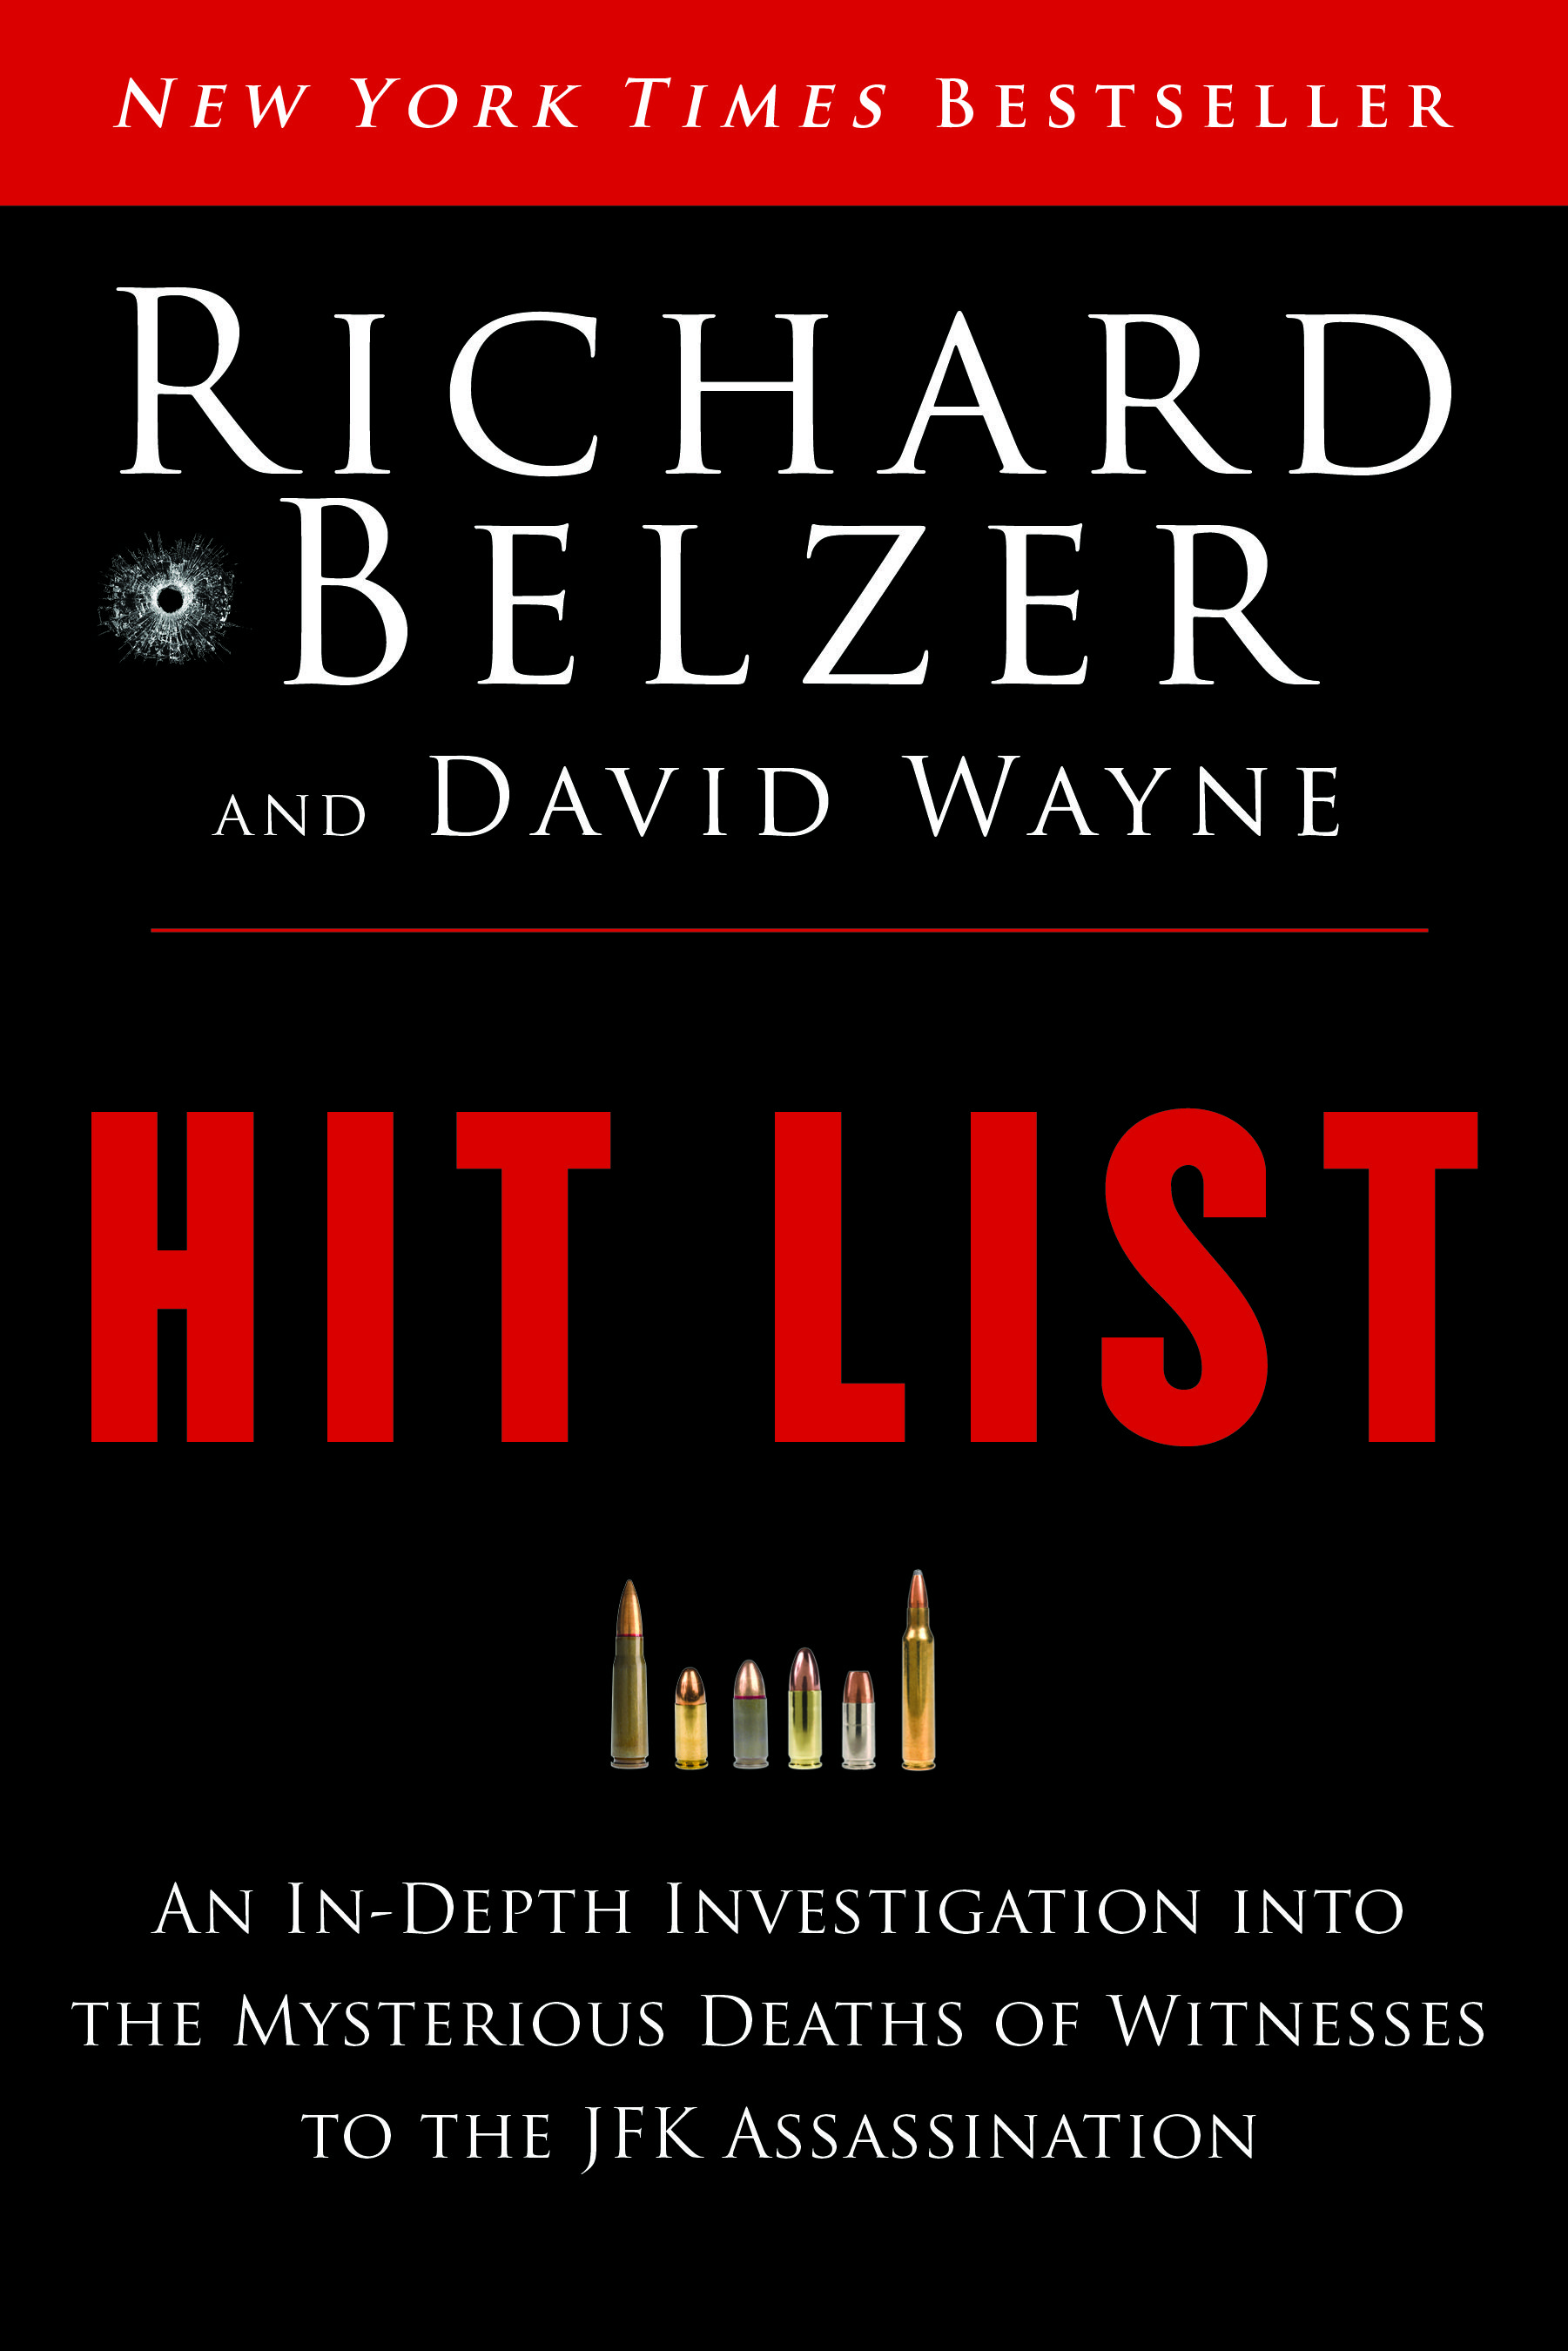 Richard Belzer Hit List